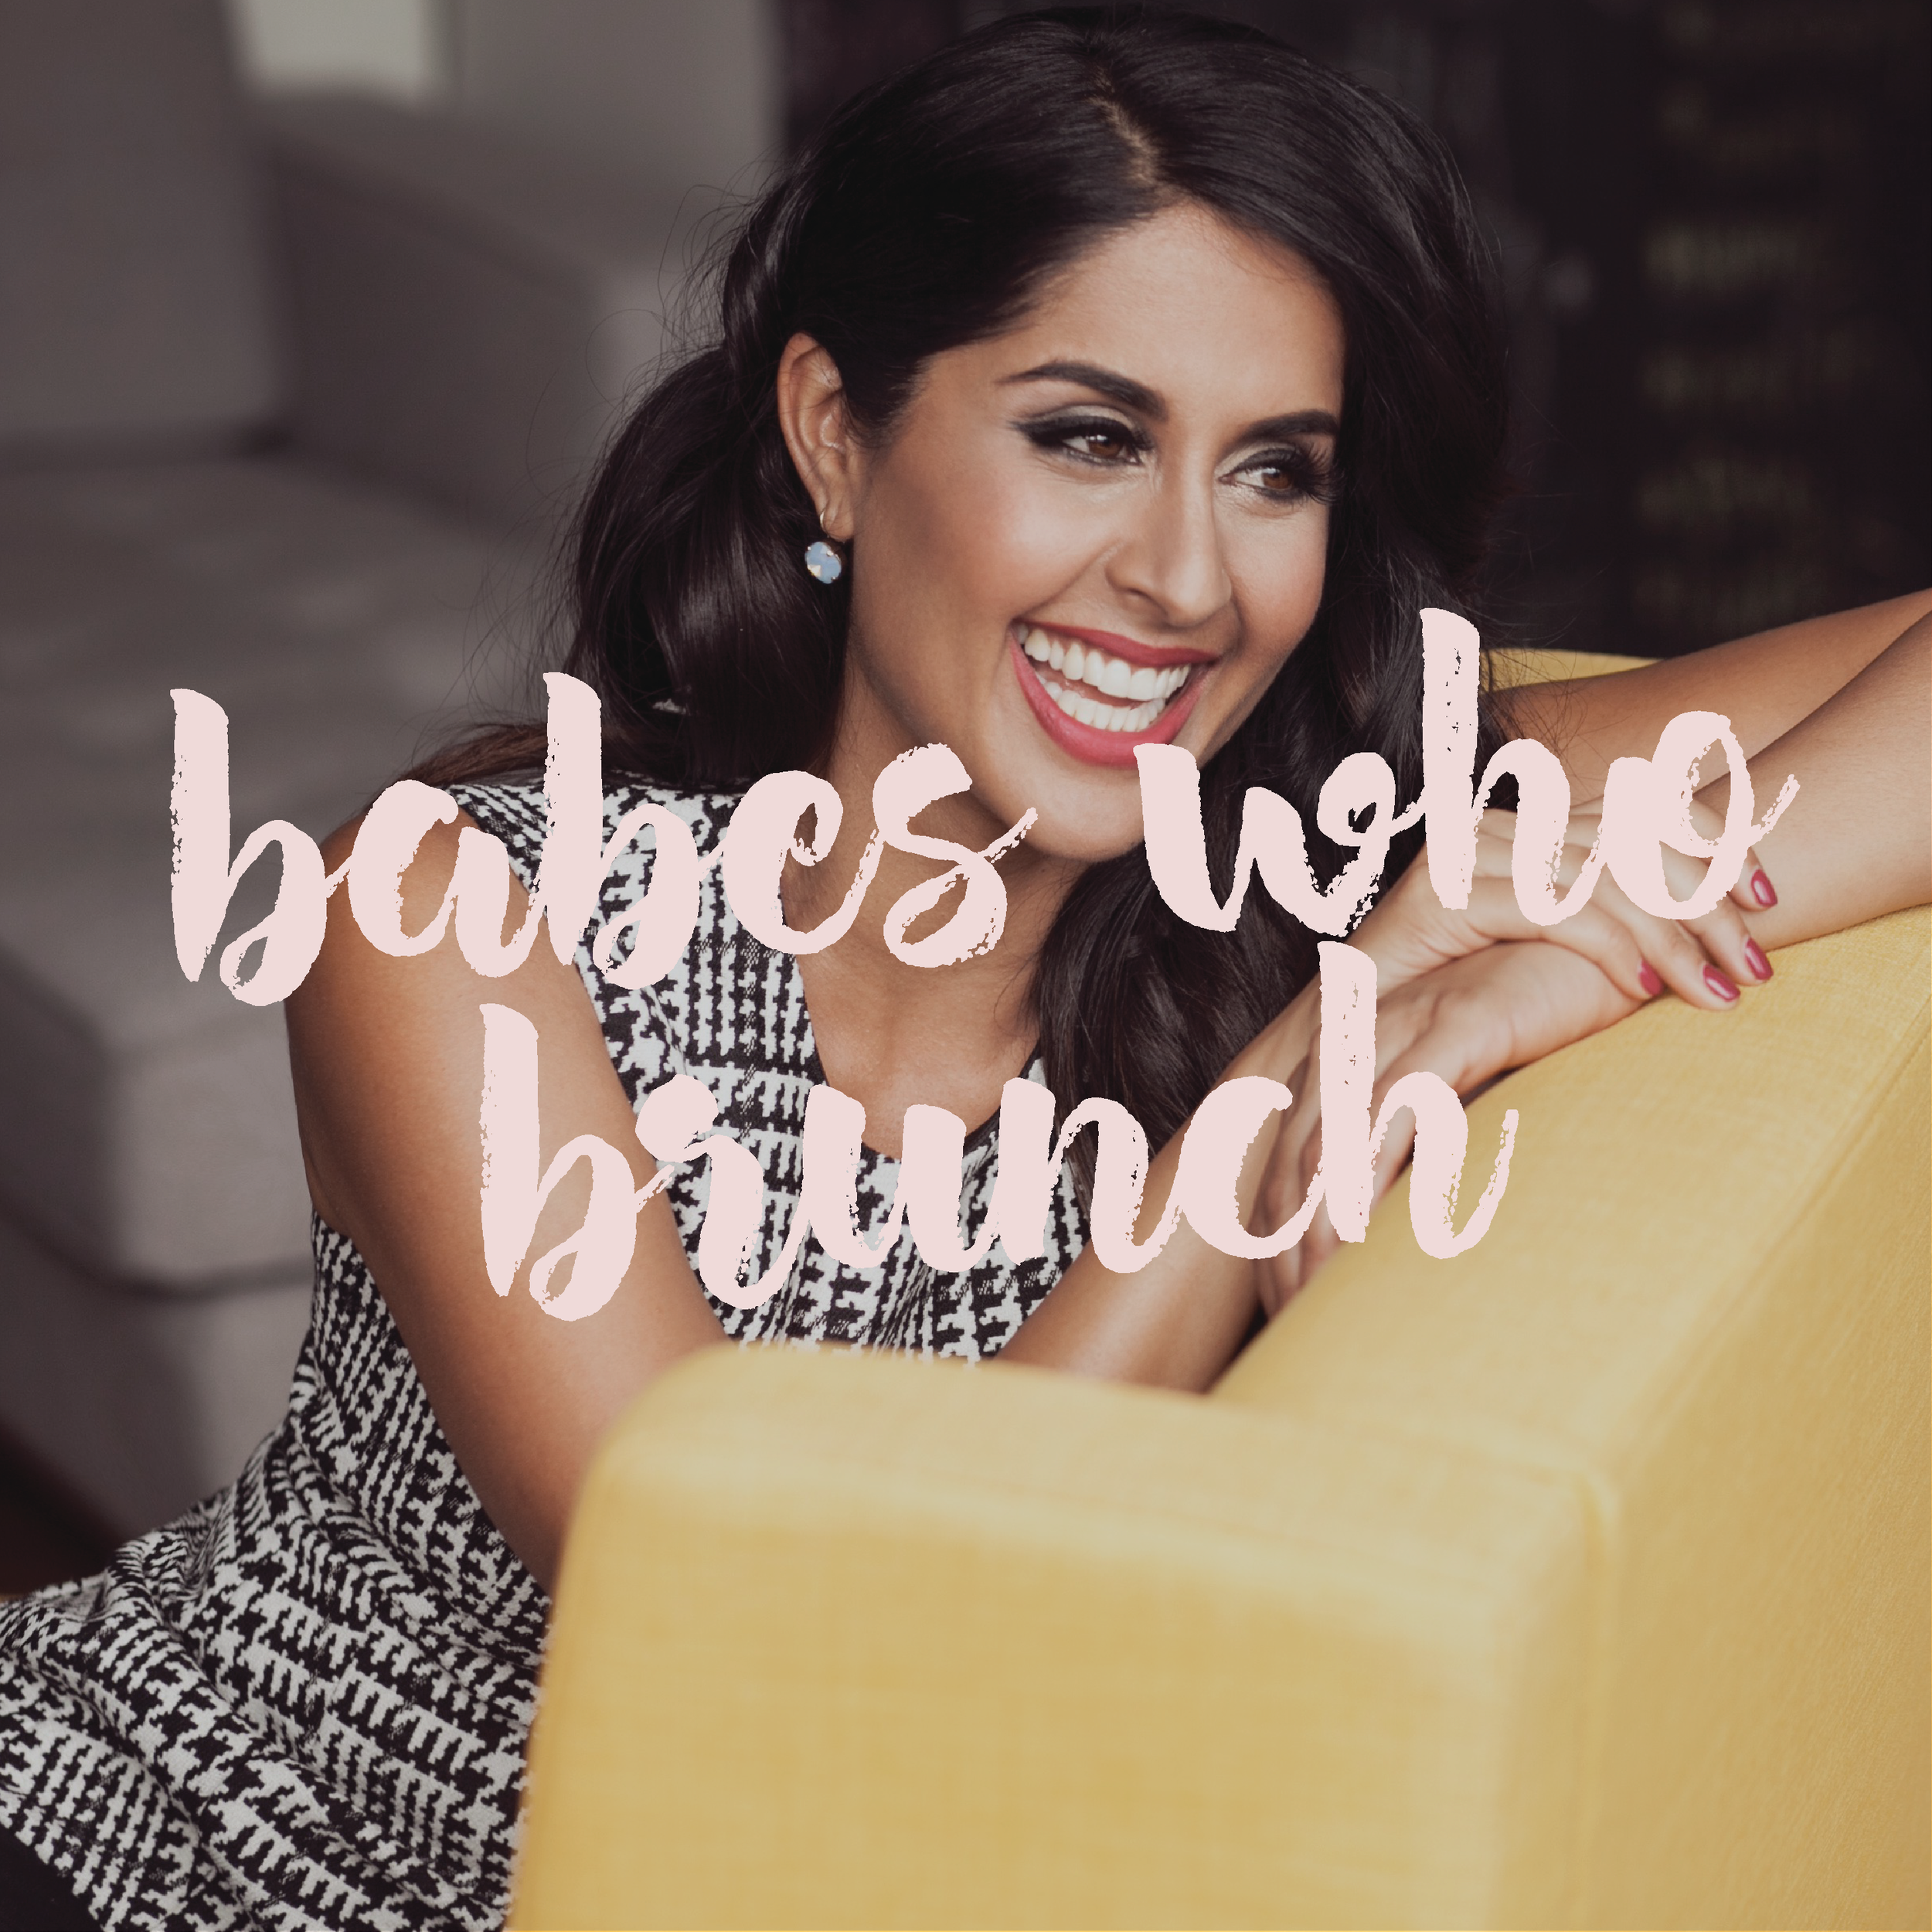 BABESWHOBRUNCH_TONIA_SEPT22.png